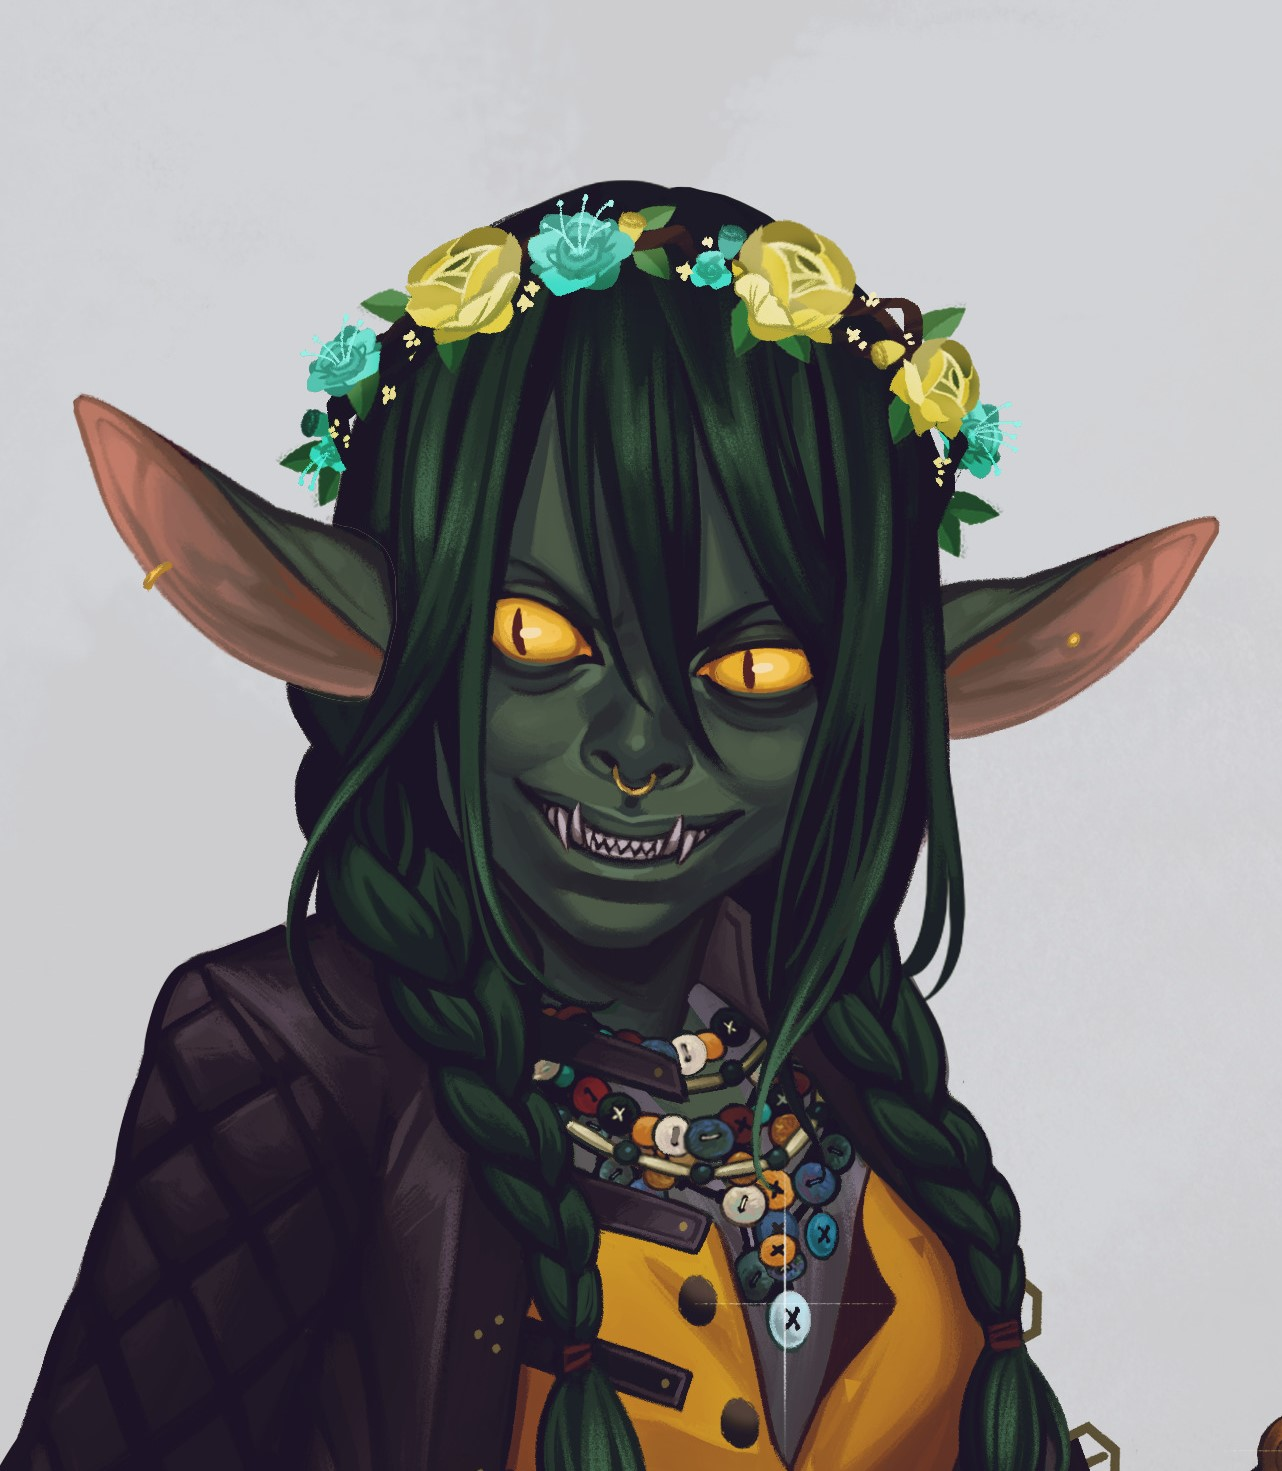 Nott Critical Role Wiki Fandom Amazing dungeons & dragons fan art. nott critical role wiki fandom